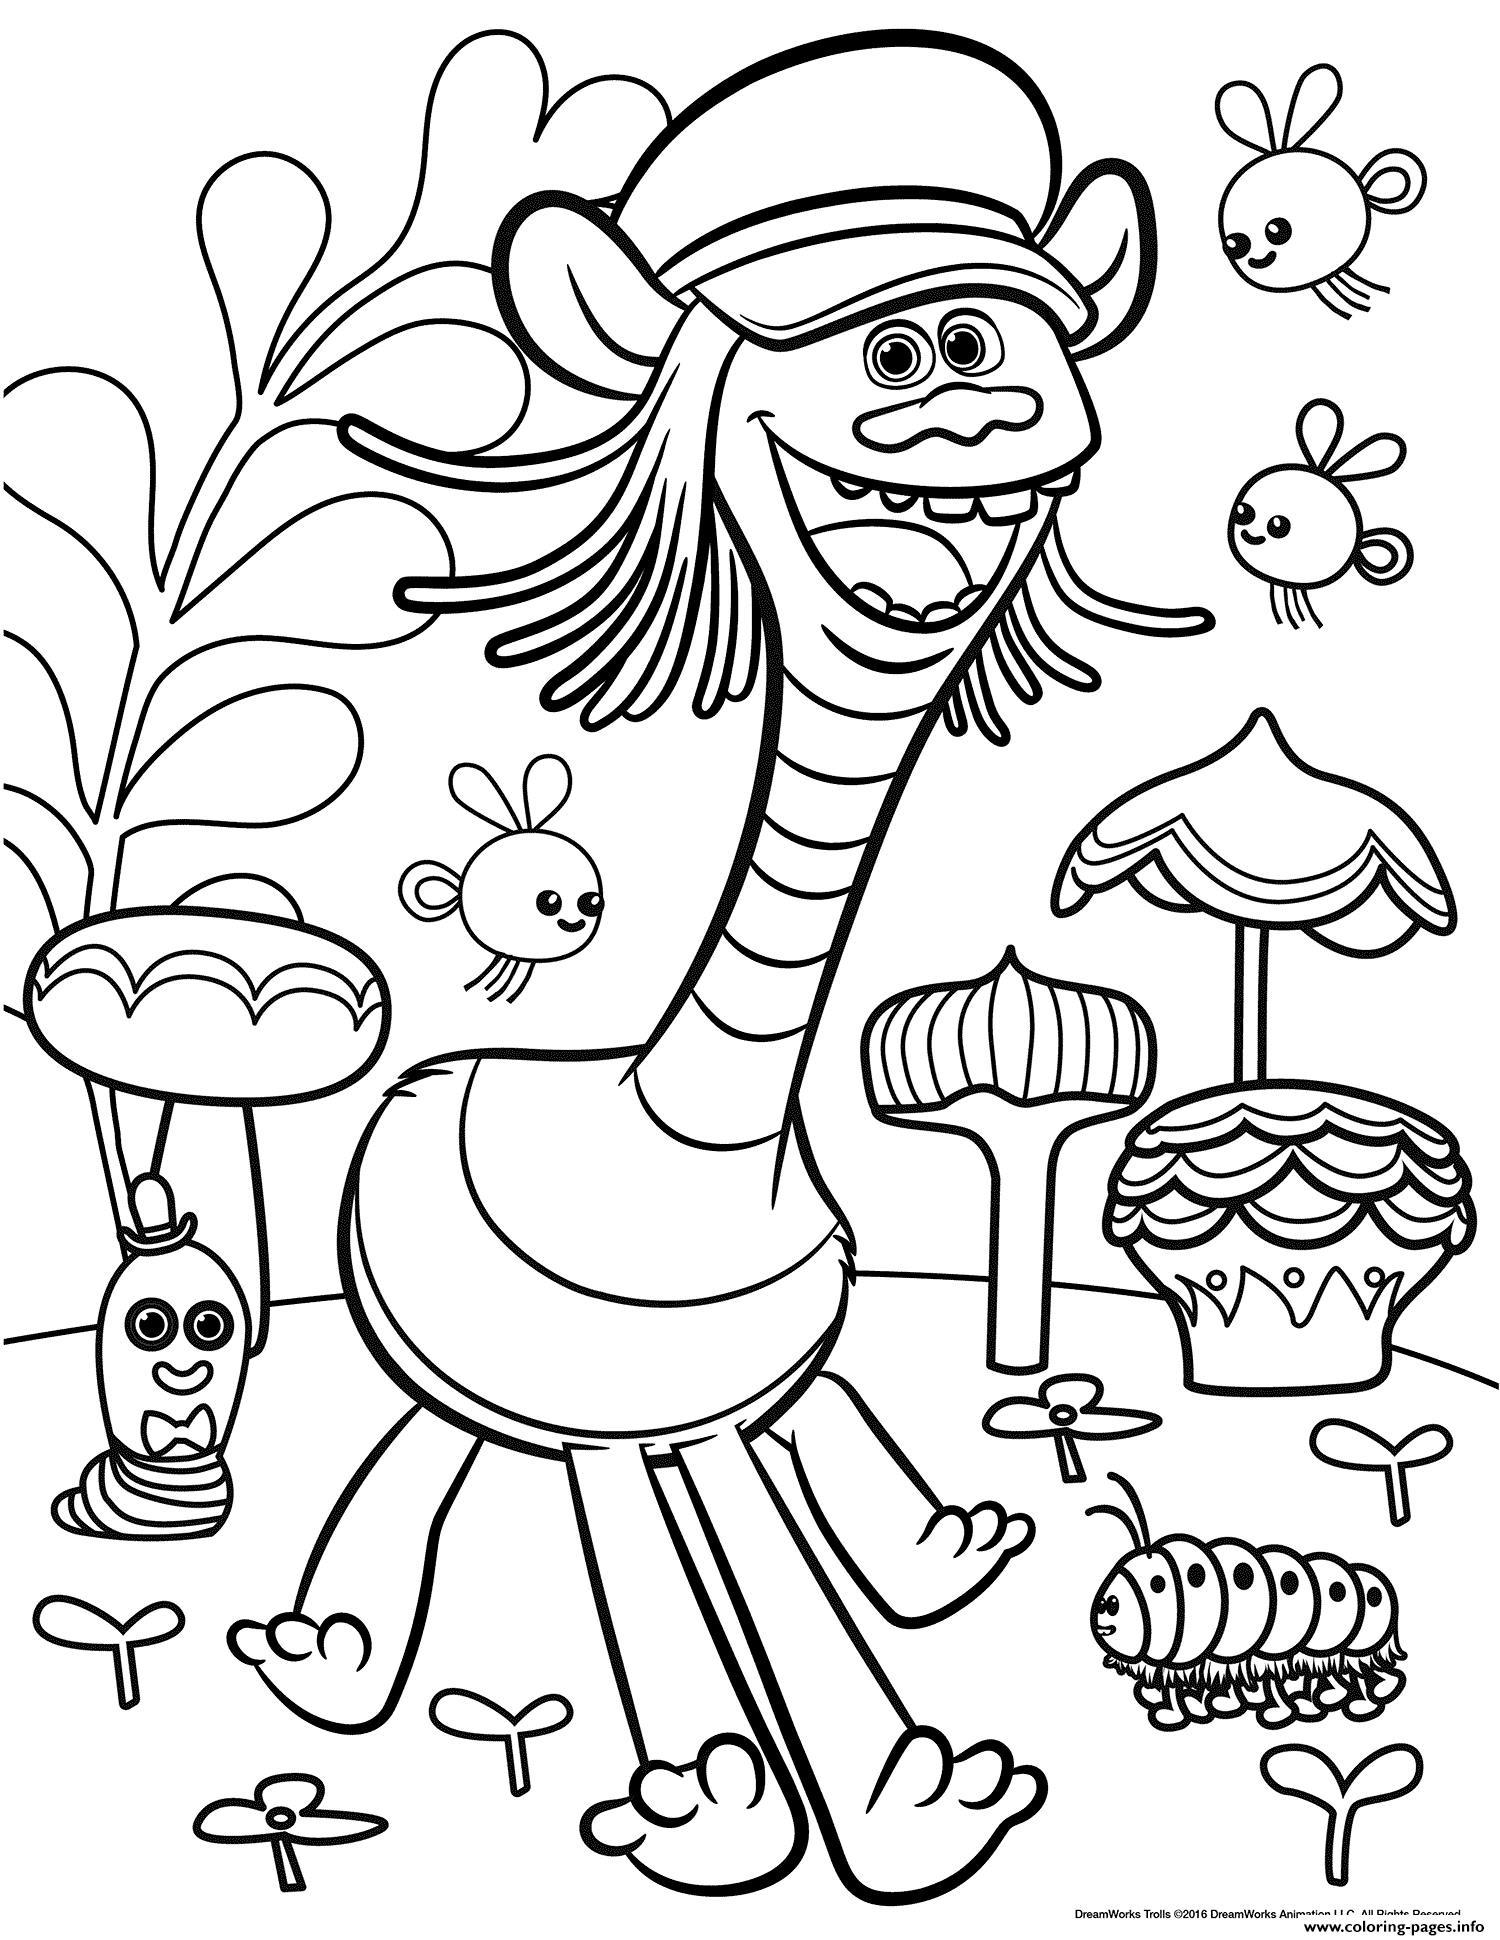 printable coloring pages trolls print trolls movie color troll coloring pages trolls printable pages coloring